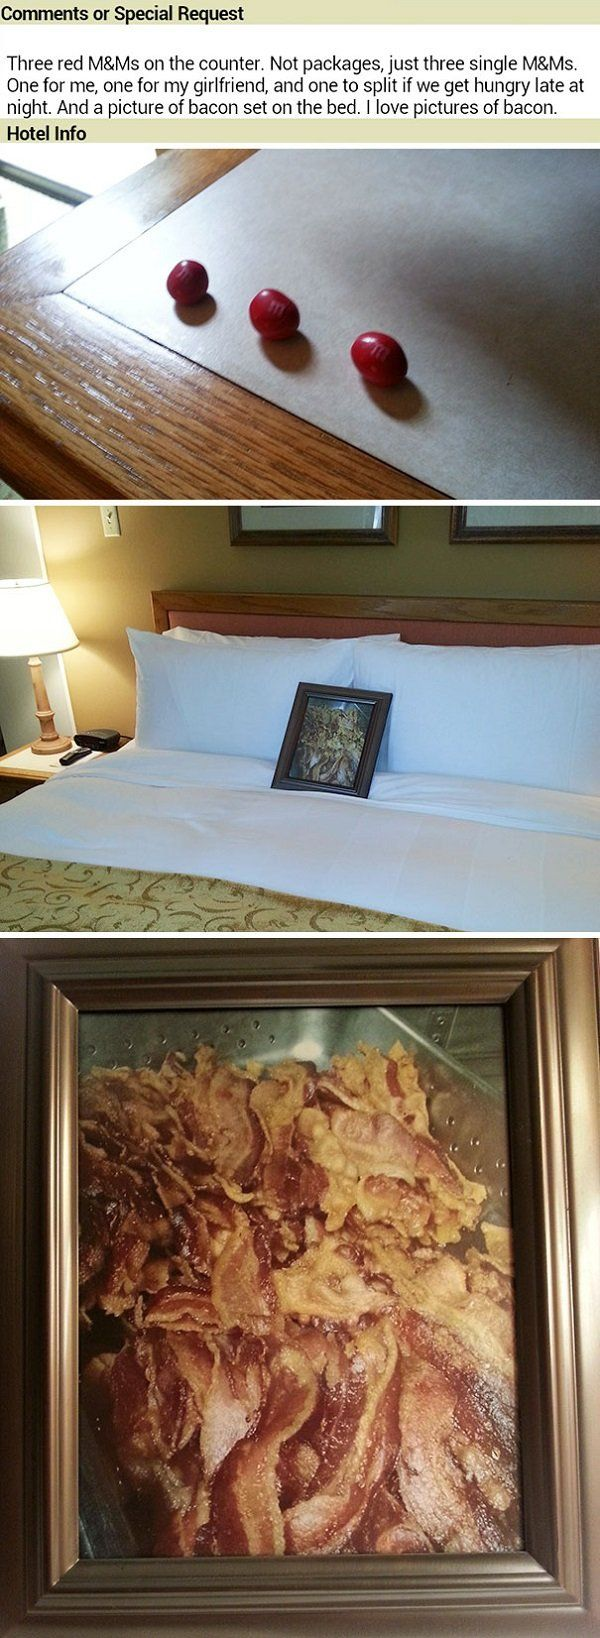 Hotels That Take Their Requests Seriously